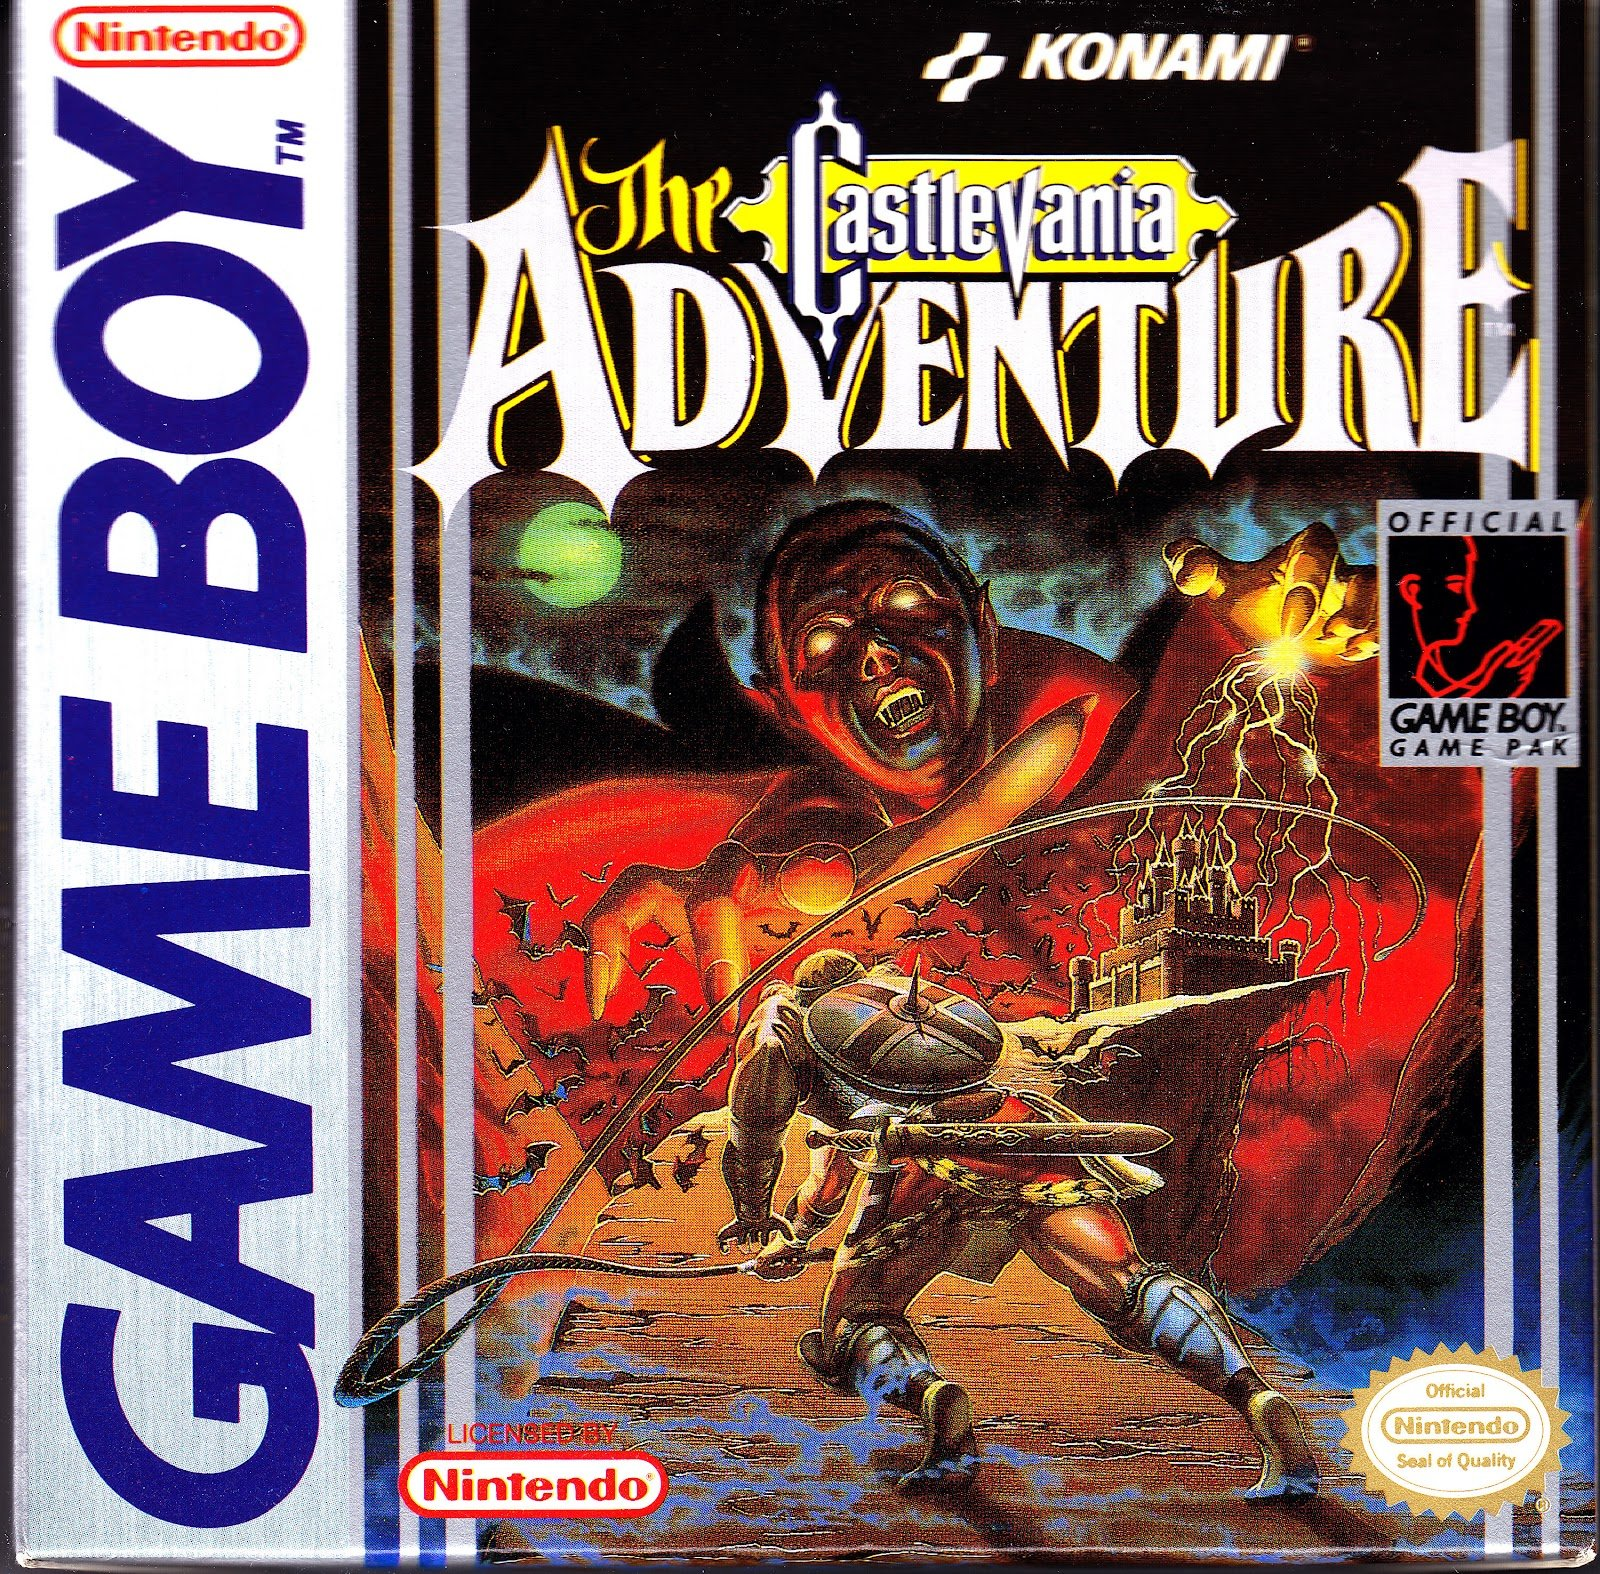 Gameboy color and advance rpg games - Ga Gameboy Color Rpg Games